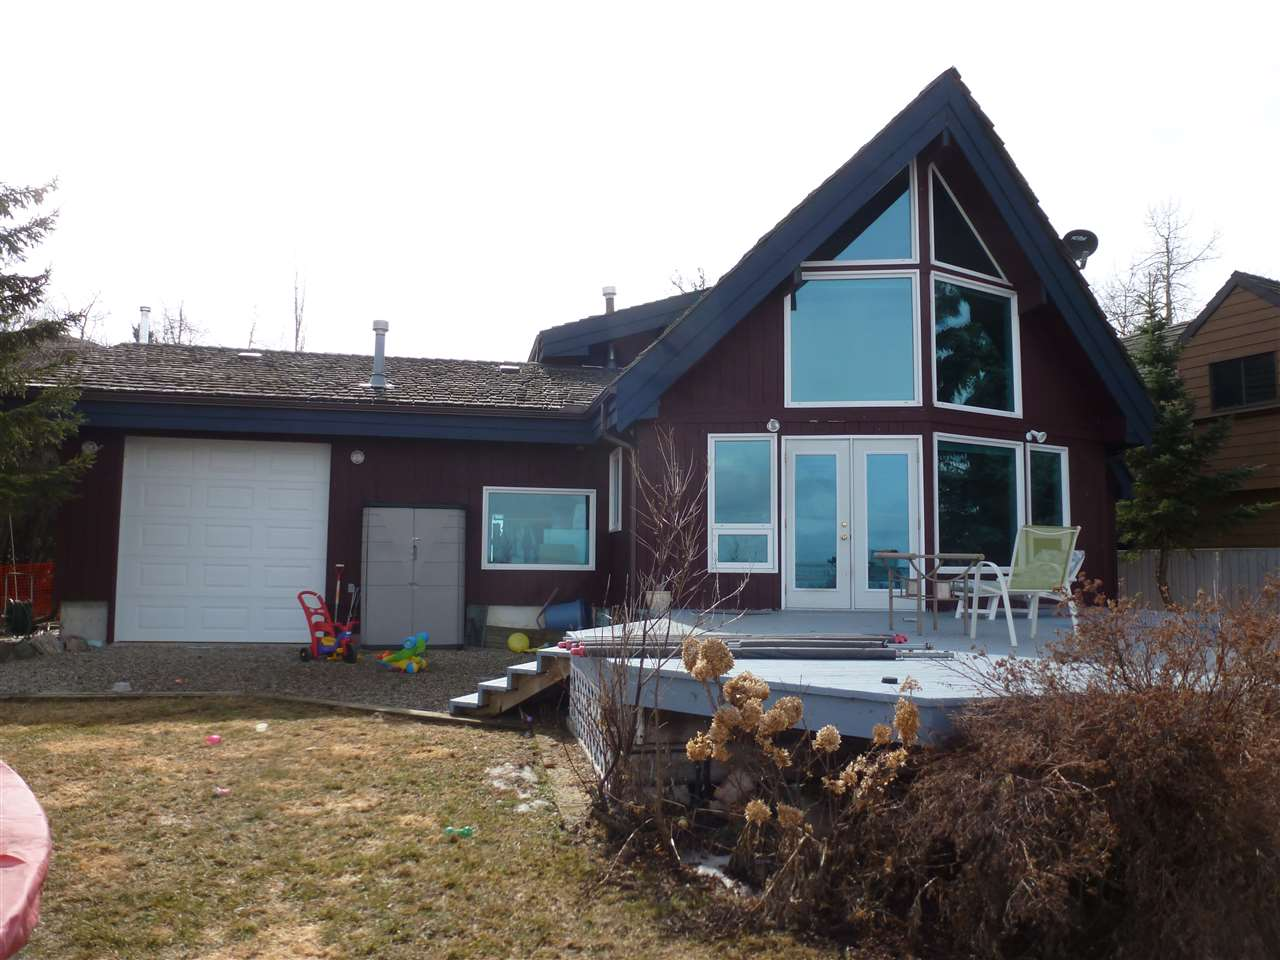 The beach is at you back door! Hastings Lake Shoreline! Yes, you can! Live at the Lake yearround! Hastings Lake is only 25 minutes (East) away from Edmonton & Sherwood Park. This fine Lakefront home is 1270 Sq Ft on two floors and features a Loft Master Bedroom w/Ensuite, plus a 2nd bedroom on the Main floor, which also features a renovated kitchen and Open Floor Plan. This home comes with in-floor heating, air conditioning and a natural Gas Fireplace, tinted glass windows Lakeside. Outside there is a huge multi-tired deck & Firepit Lakeside. There Double Attached Garage is Oversized, Insulated & Heated w/220 wiring, plus floor drain, hot & cold running water and built-in cabinets. Great unobstructed view of Hastings Lake! Great Home! Great Community! Take a Sunday Drive and check it out!